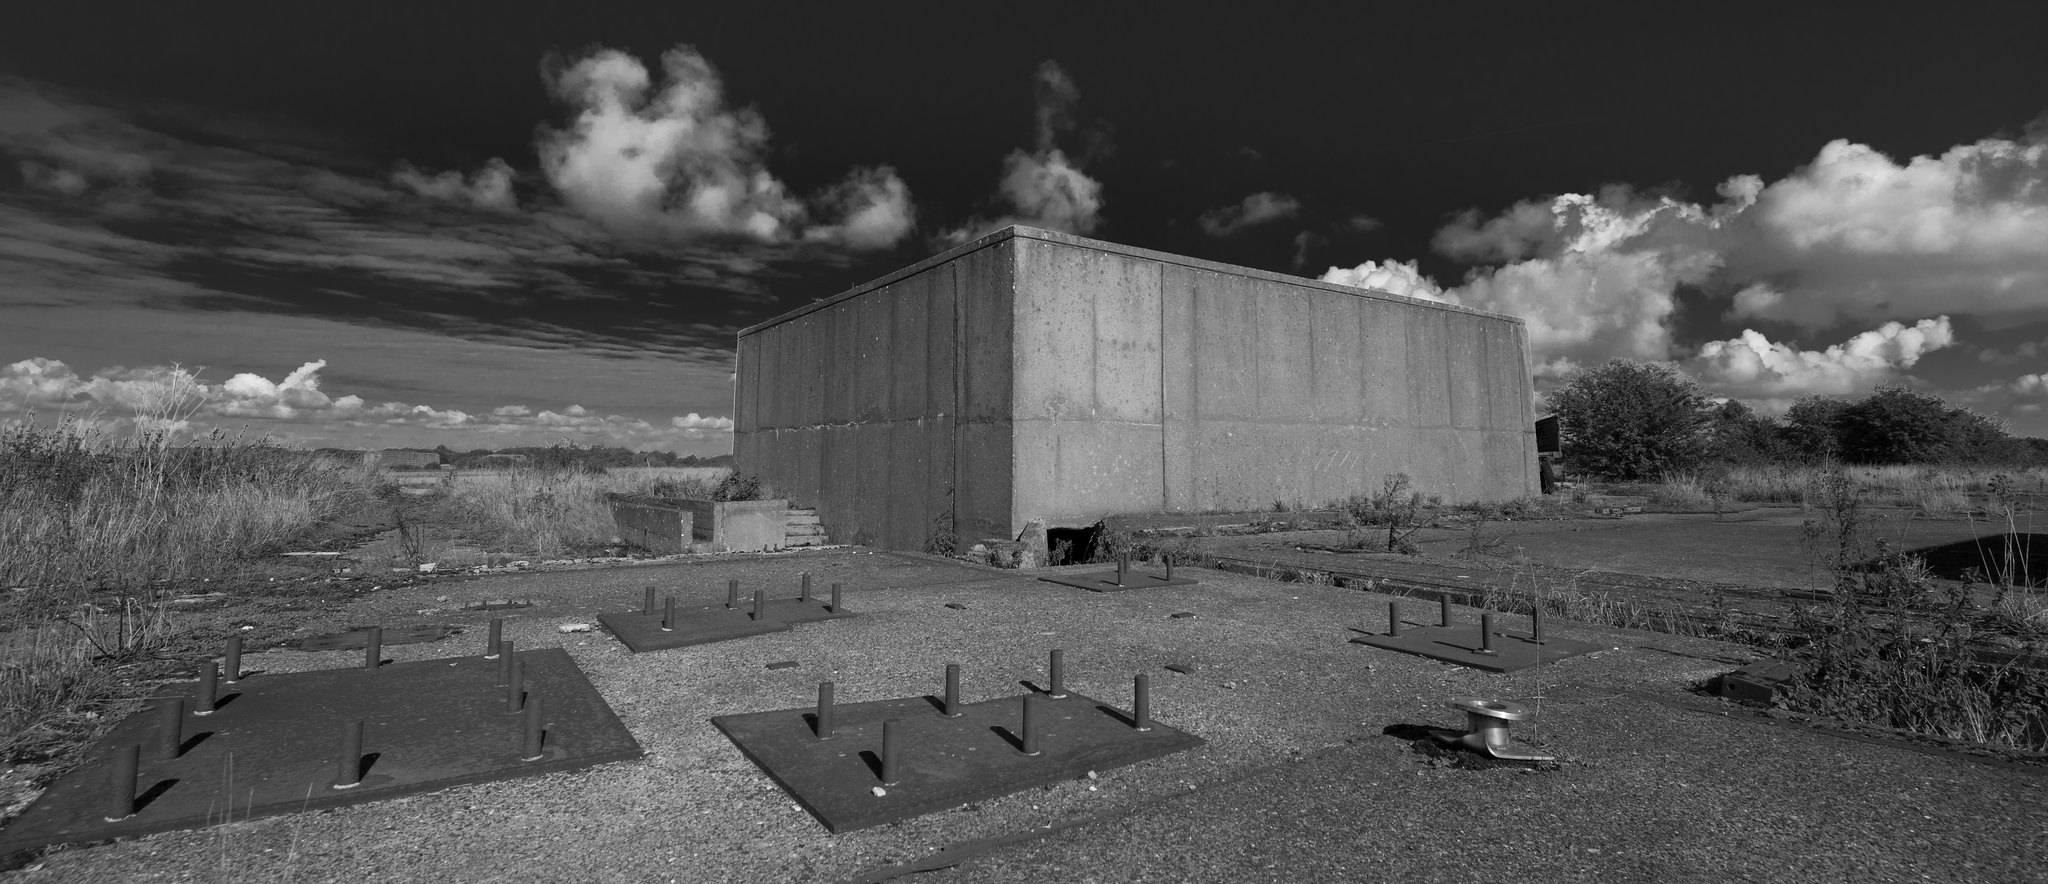 Cold War Bunker 3 | by Nicholls of the Yard